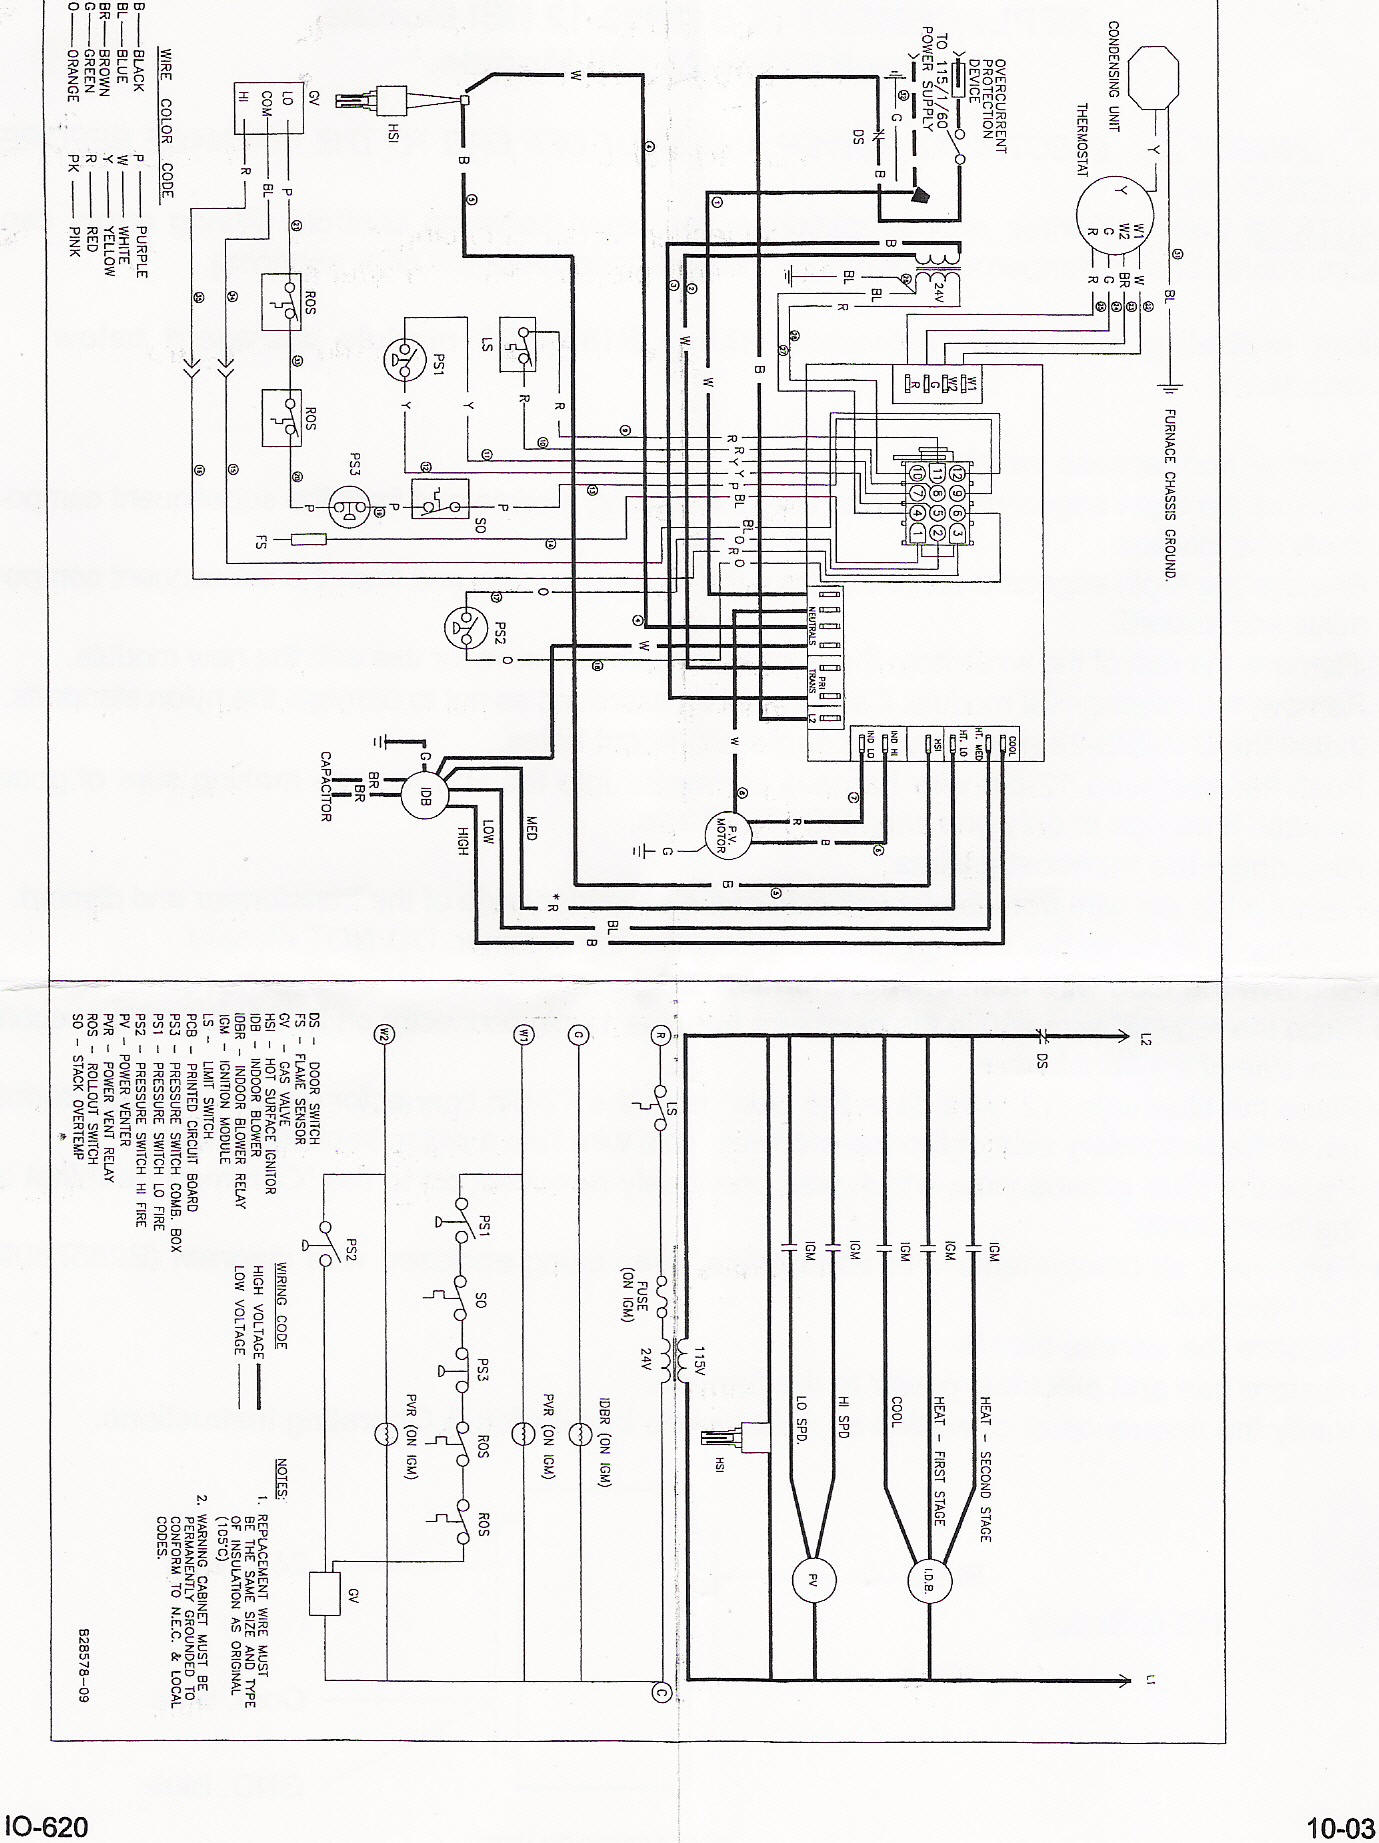 goodma2 instr goodman control board b18099 23 instructions goodman furnace control board wiring diagram at suagrazia.org